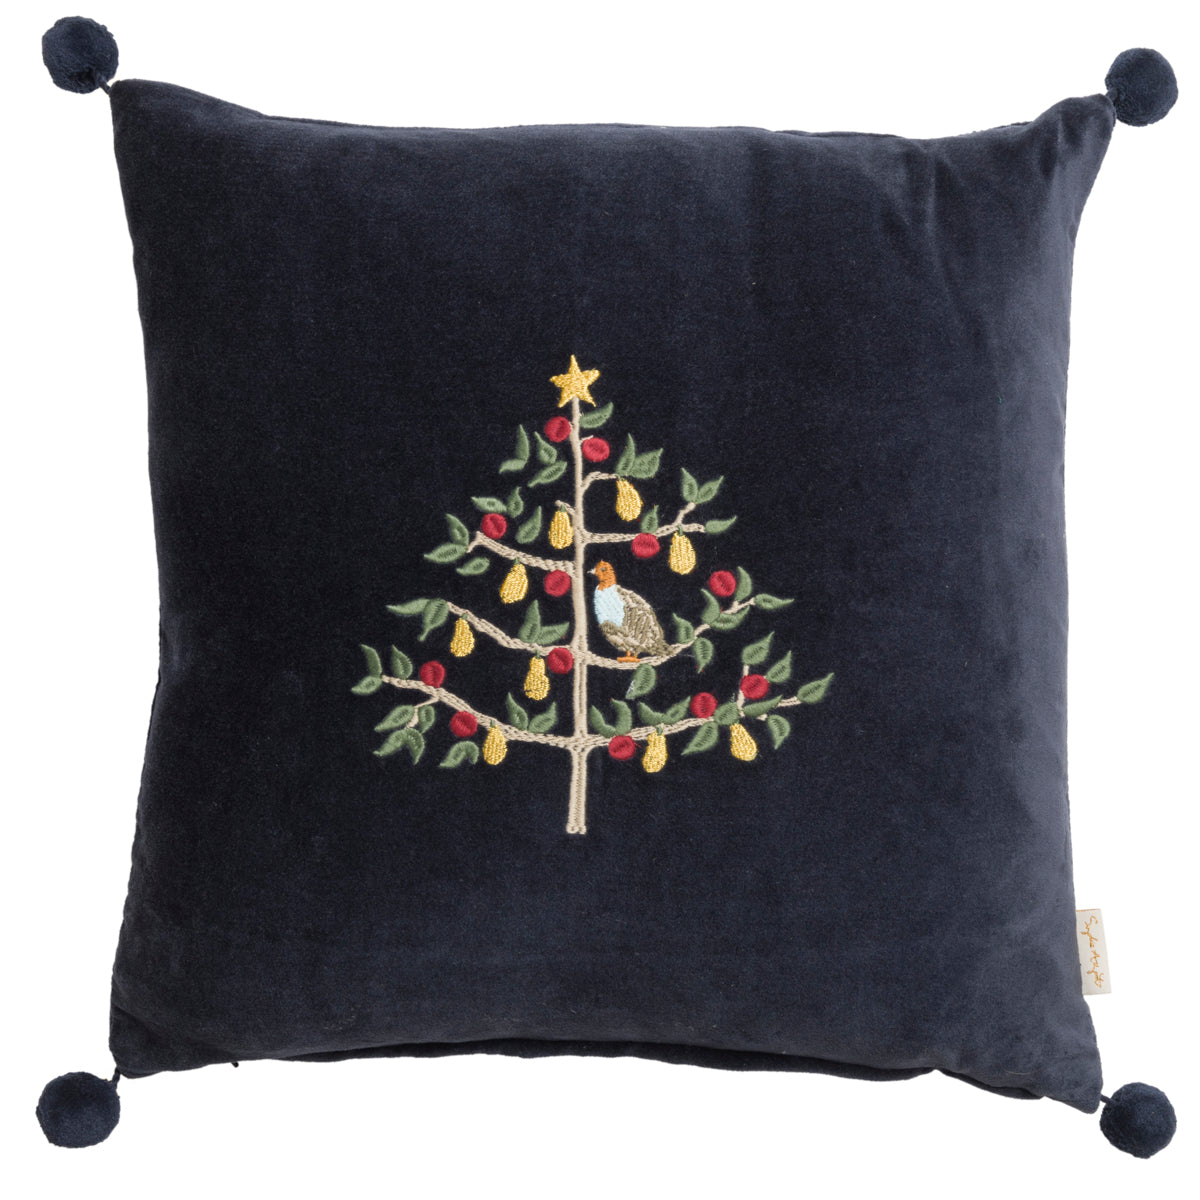 Partridge Embroidered Cushion